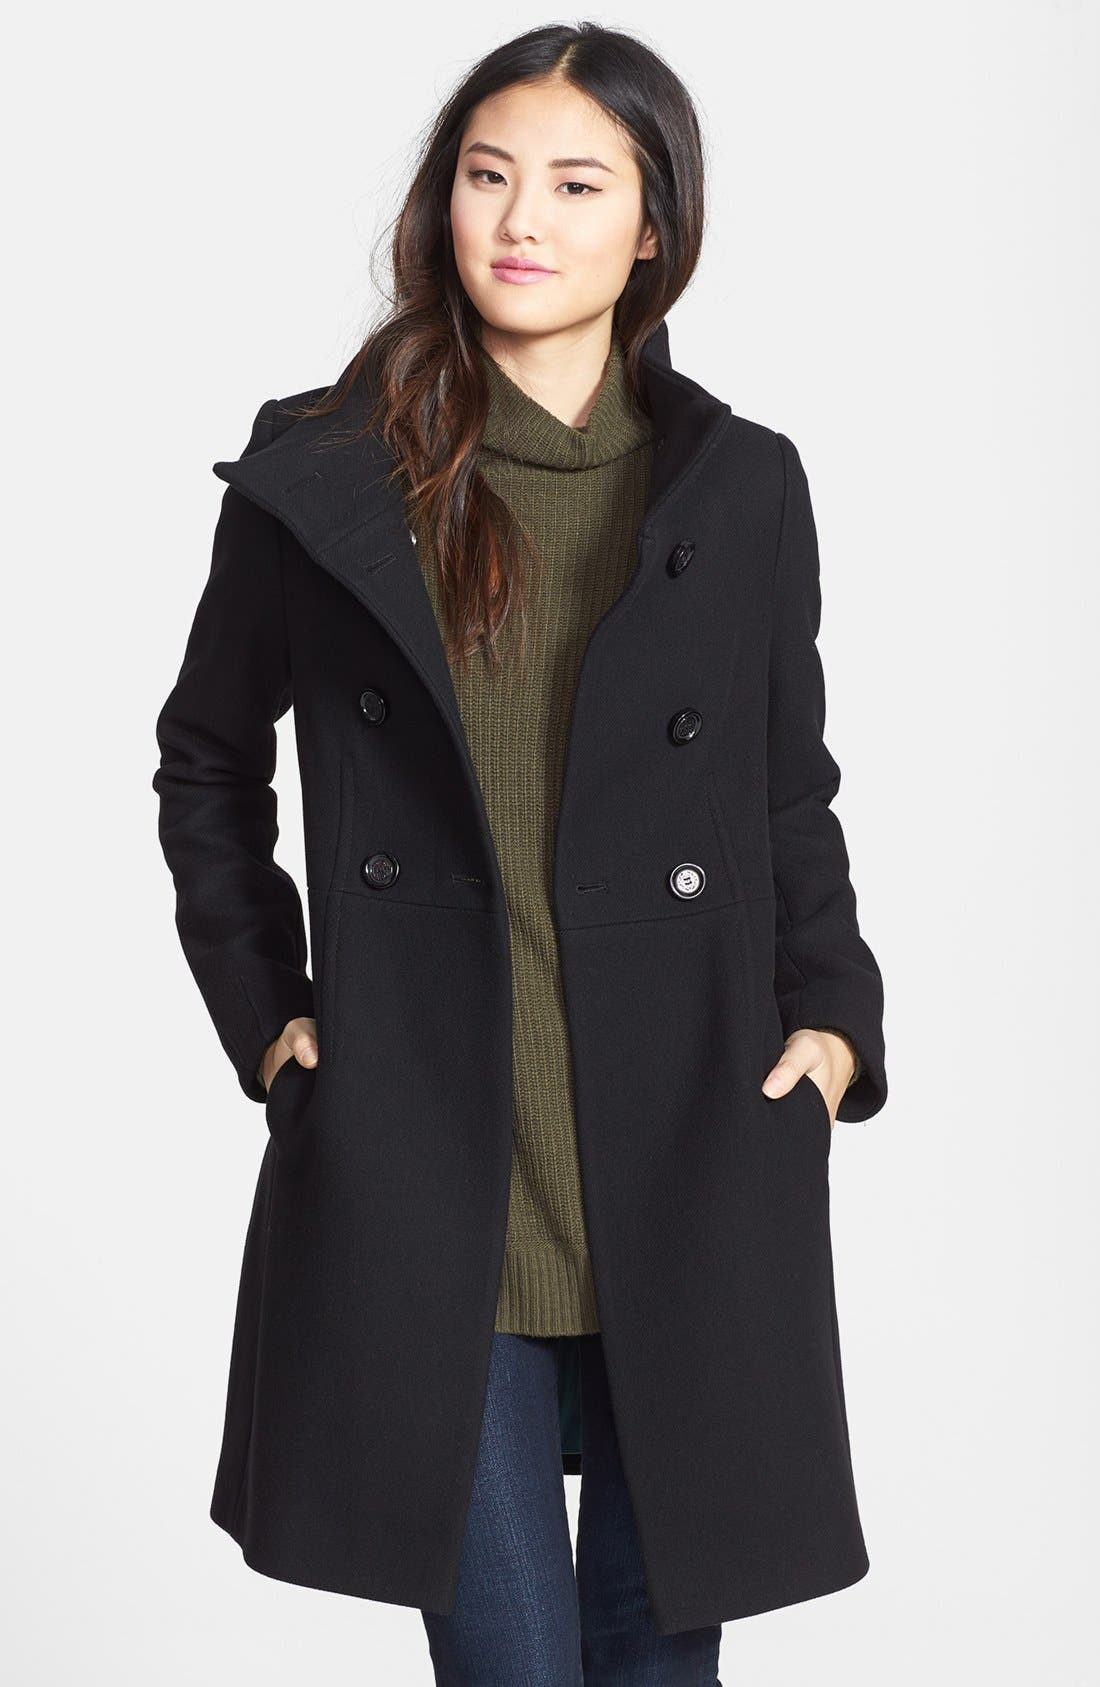 Alternate Image 1 Selected - Elie Tahari 'Pina' Stand Collar Double Breasted Long Wool Blend Coat